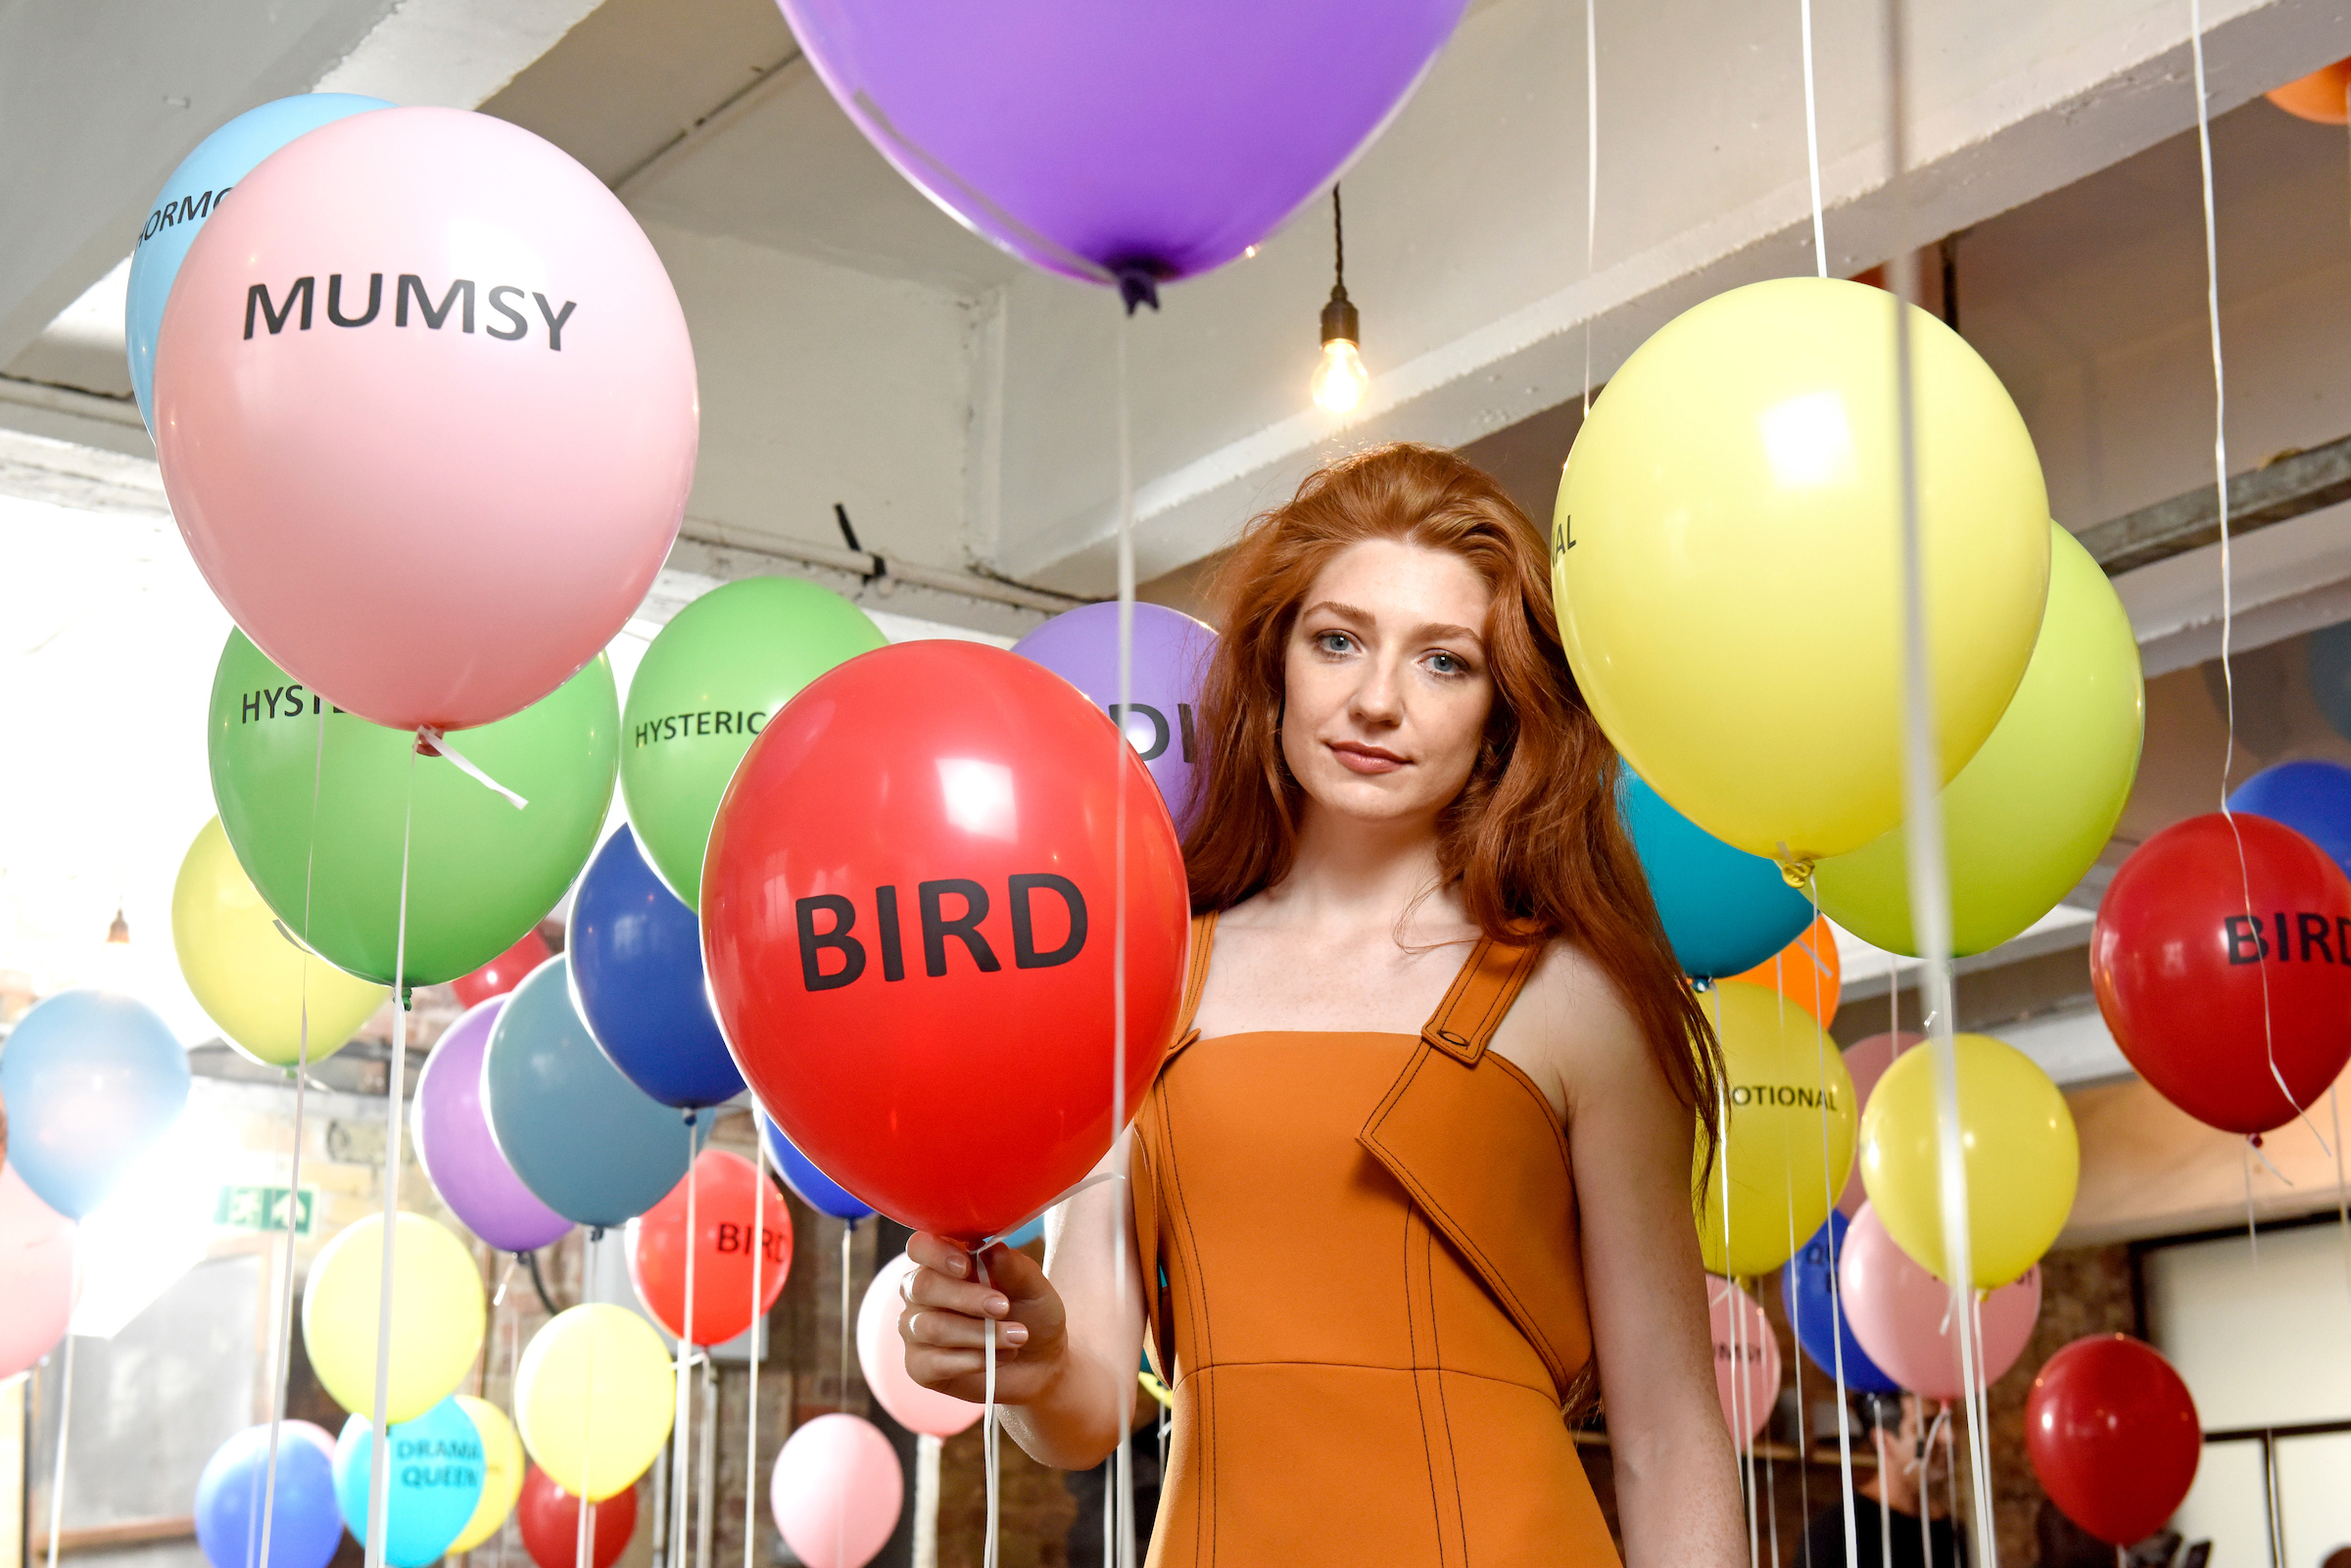 Former Girls Aloud star Nicola Roberts is fronting the campaign